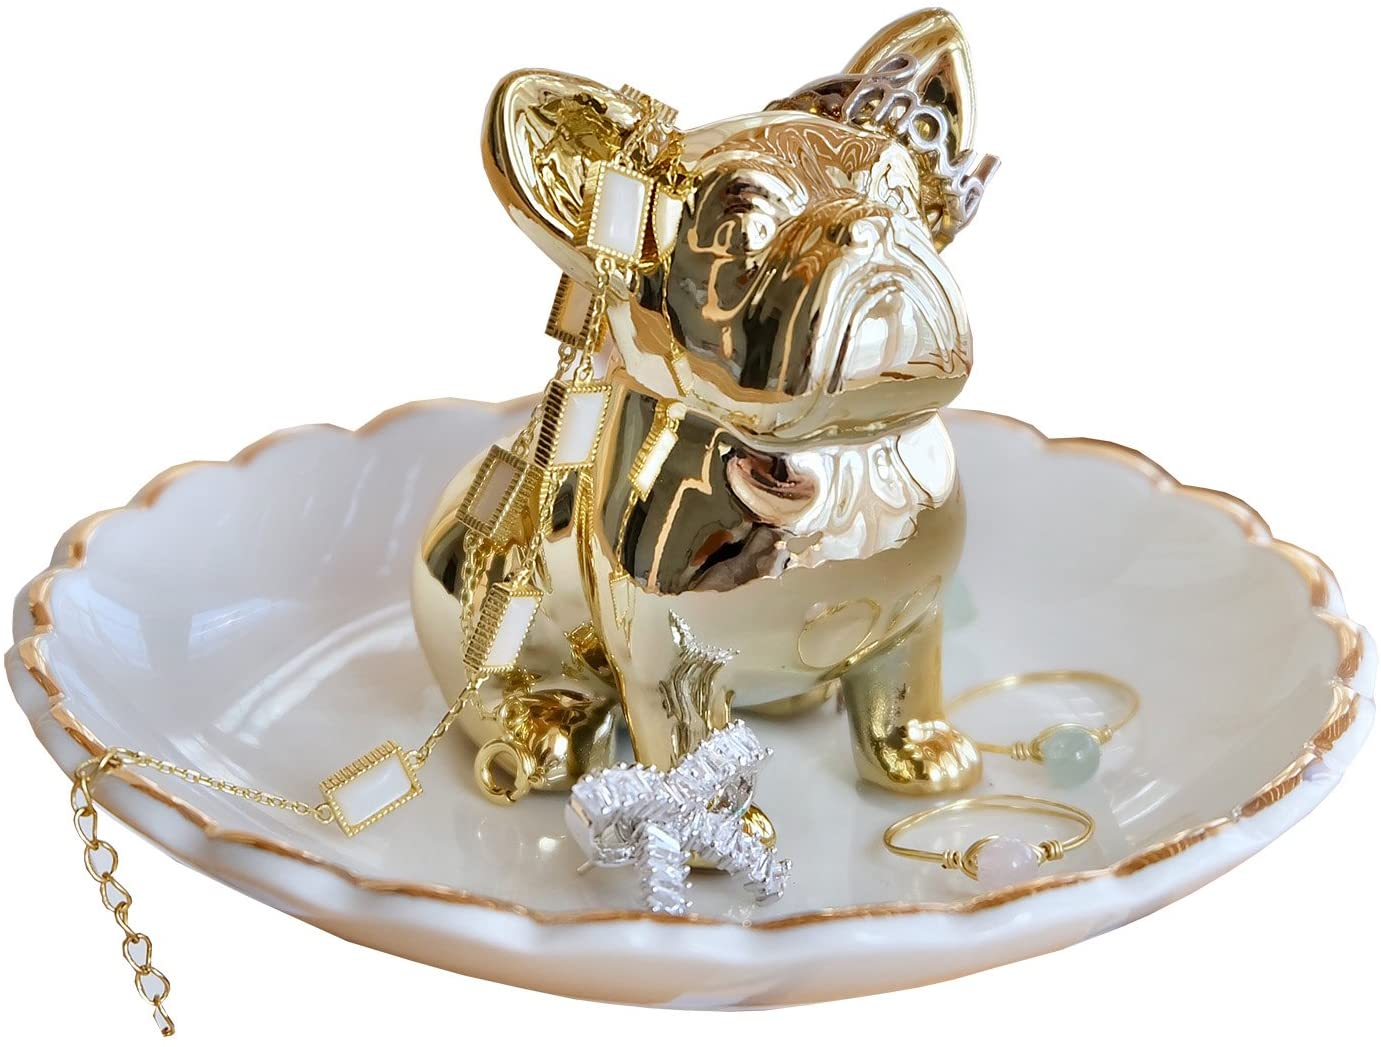 PUDDING CABIN Bulldog Ring Holder Dish Trinket Holder Gold Jewelry Tray for Birthday Wedding Engagement Xmas Gift